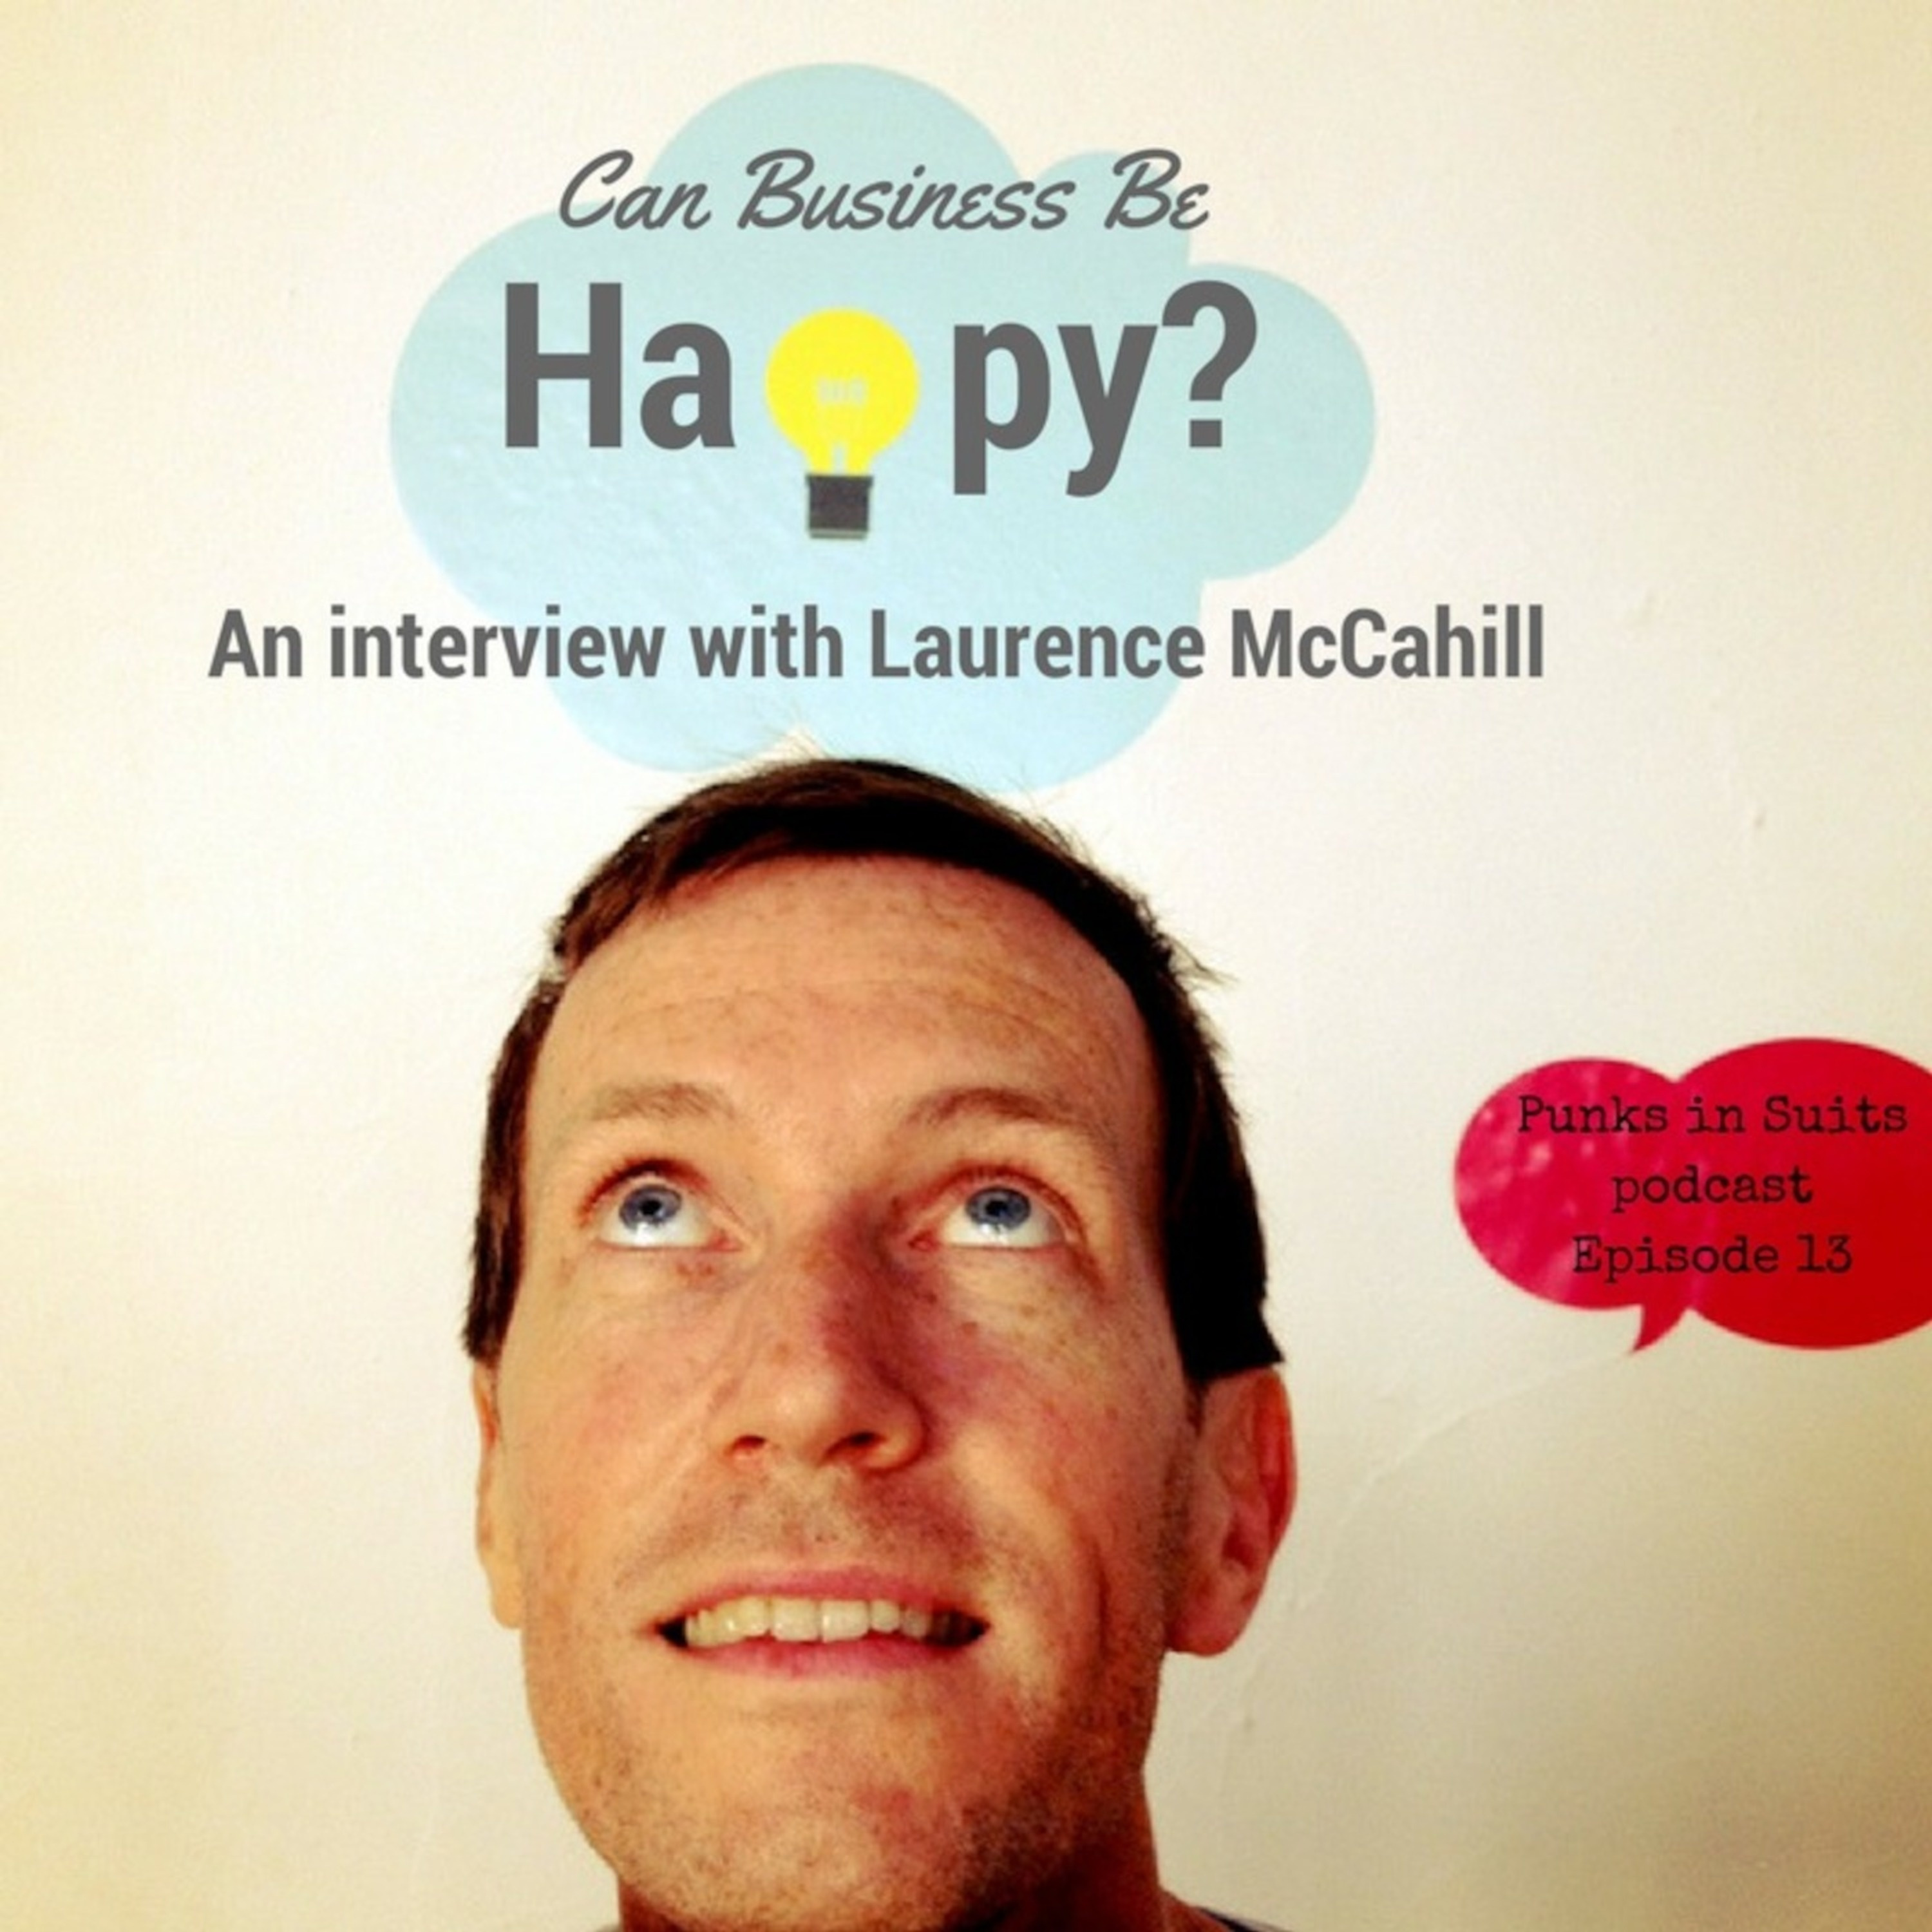 Episode 13: Can Business Be Happy? An interview with Laurence McCahill